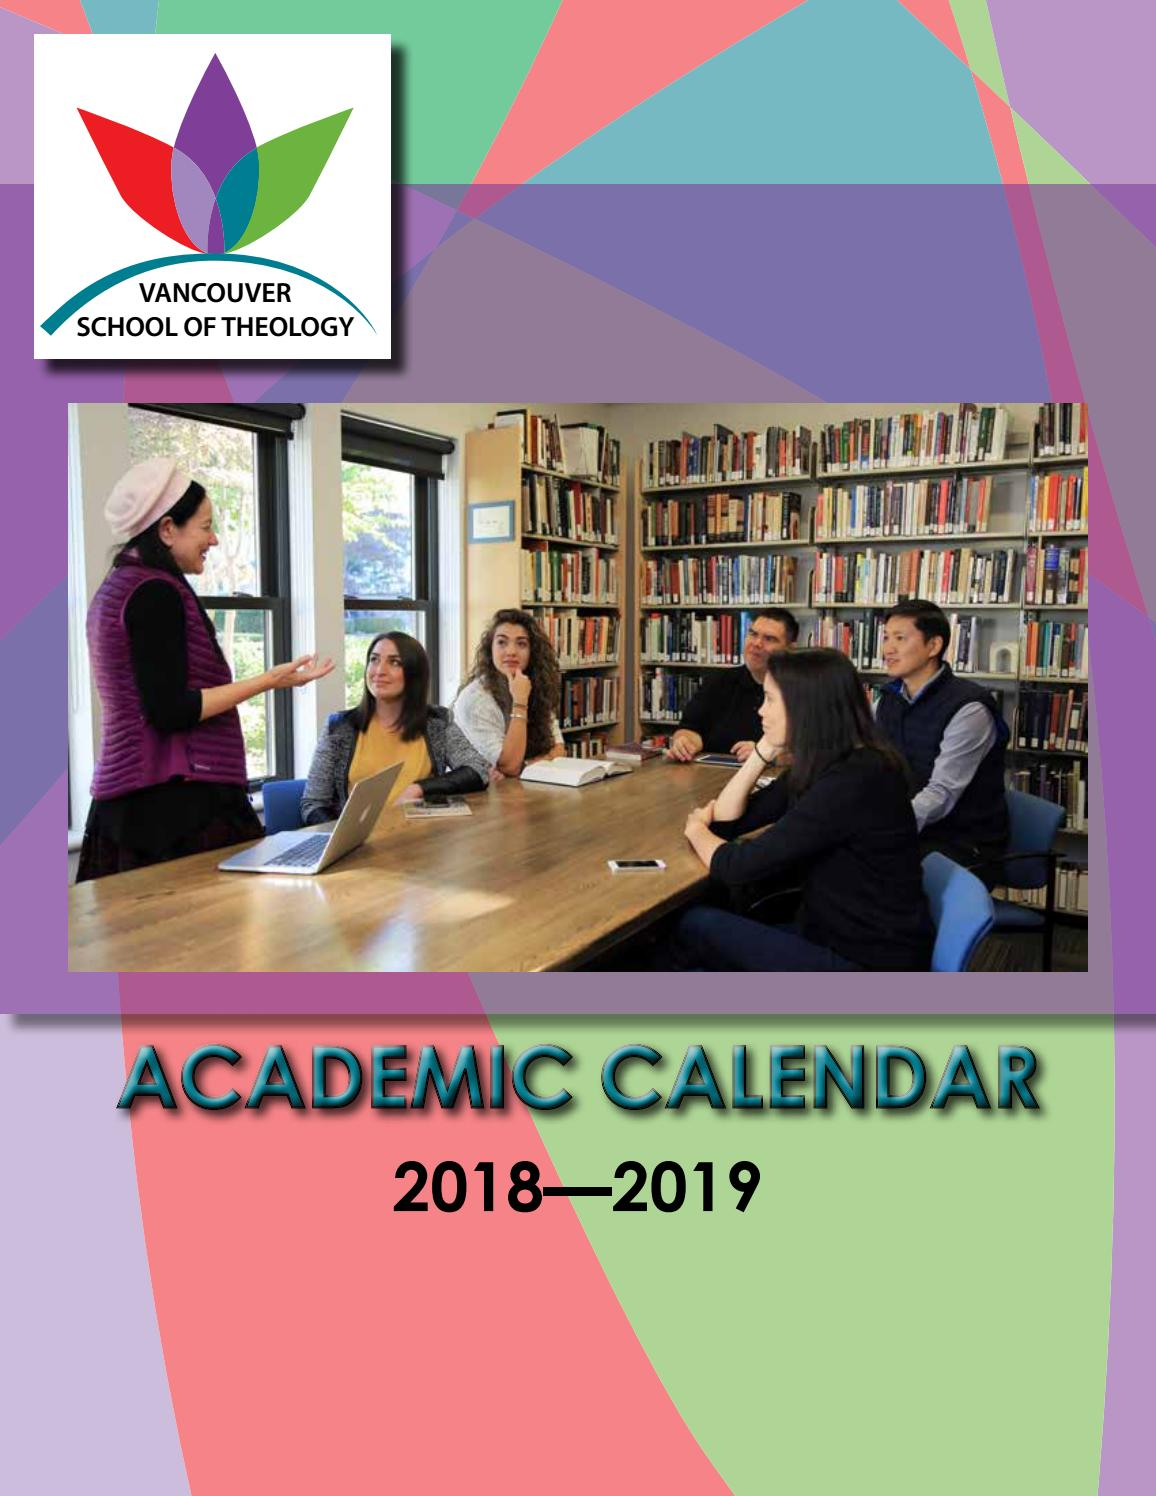 VST Academic Calendar 2018-2019 by Vancouver School of Theology - issuu